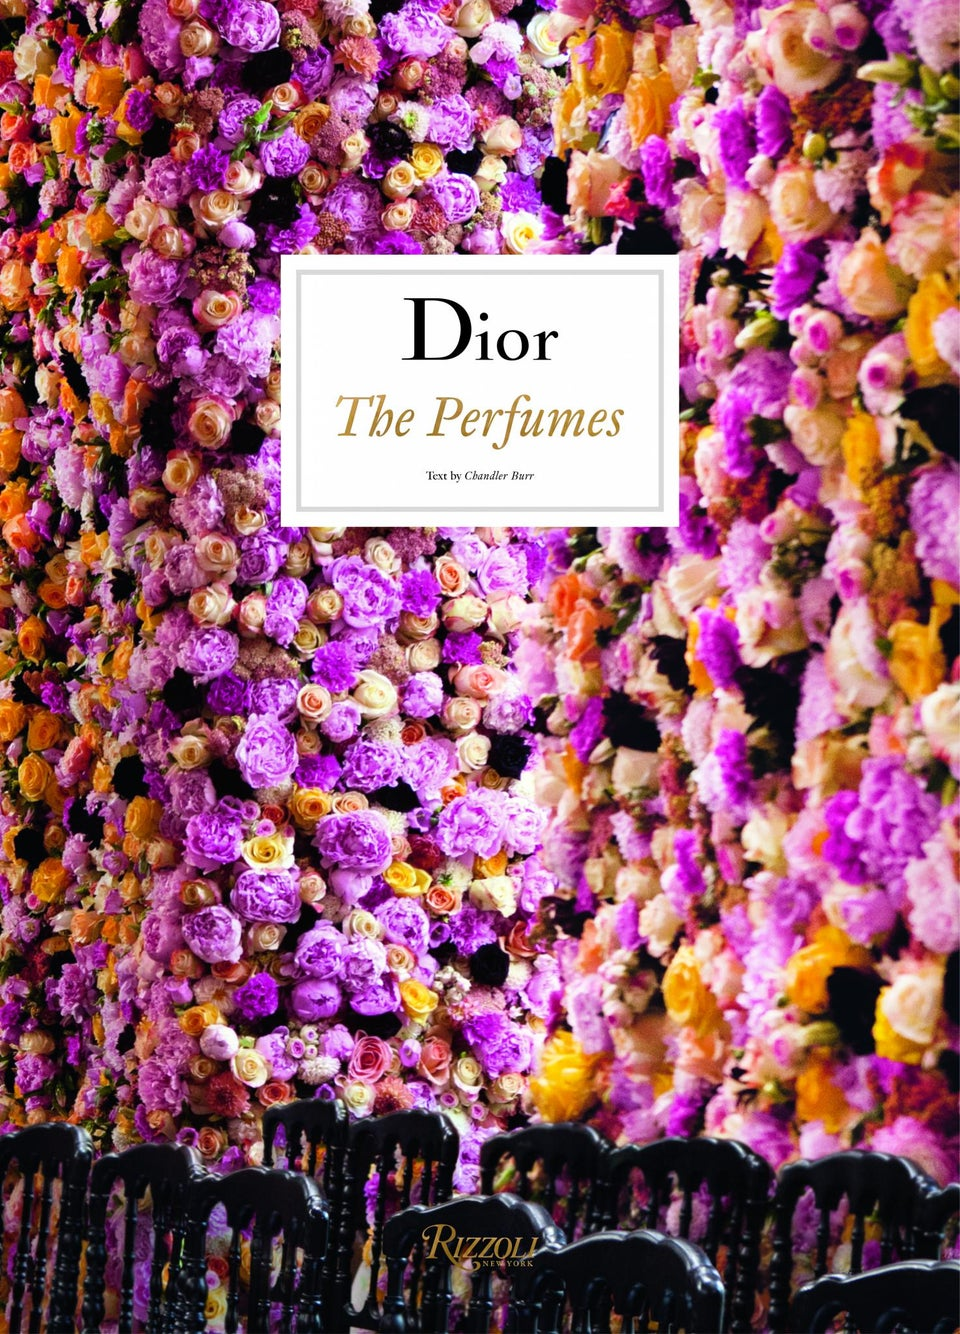 New Book Release, 'Dior: The Perfumes' Talks Man Behind the Brand